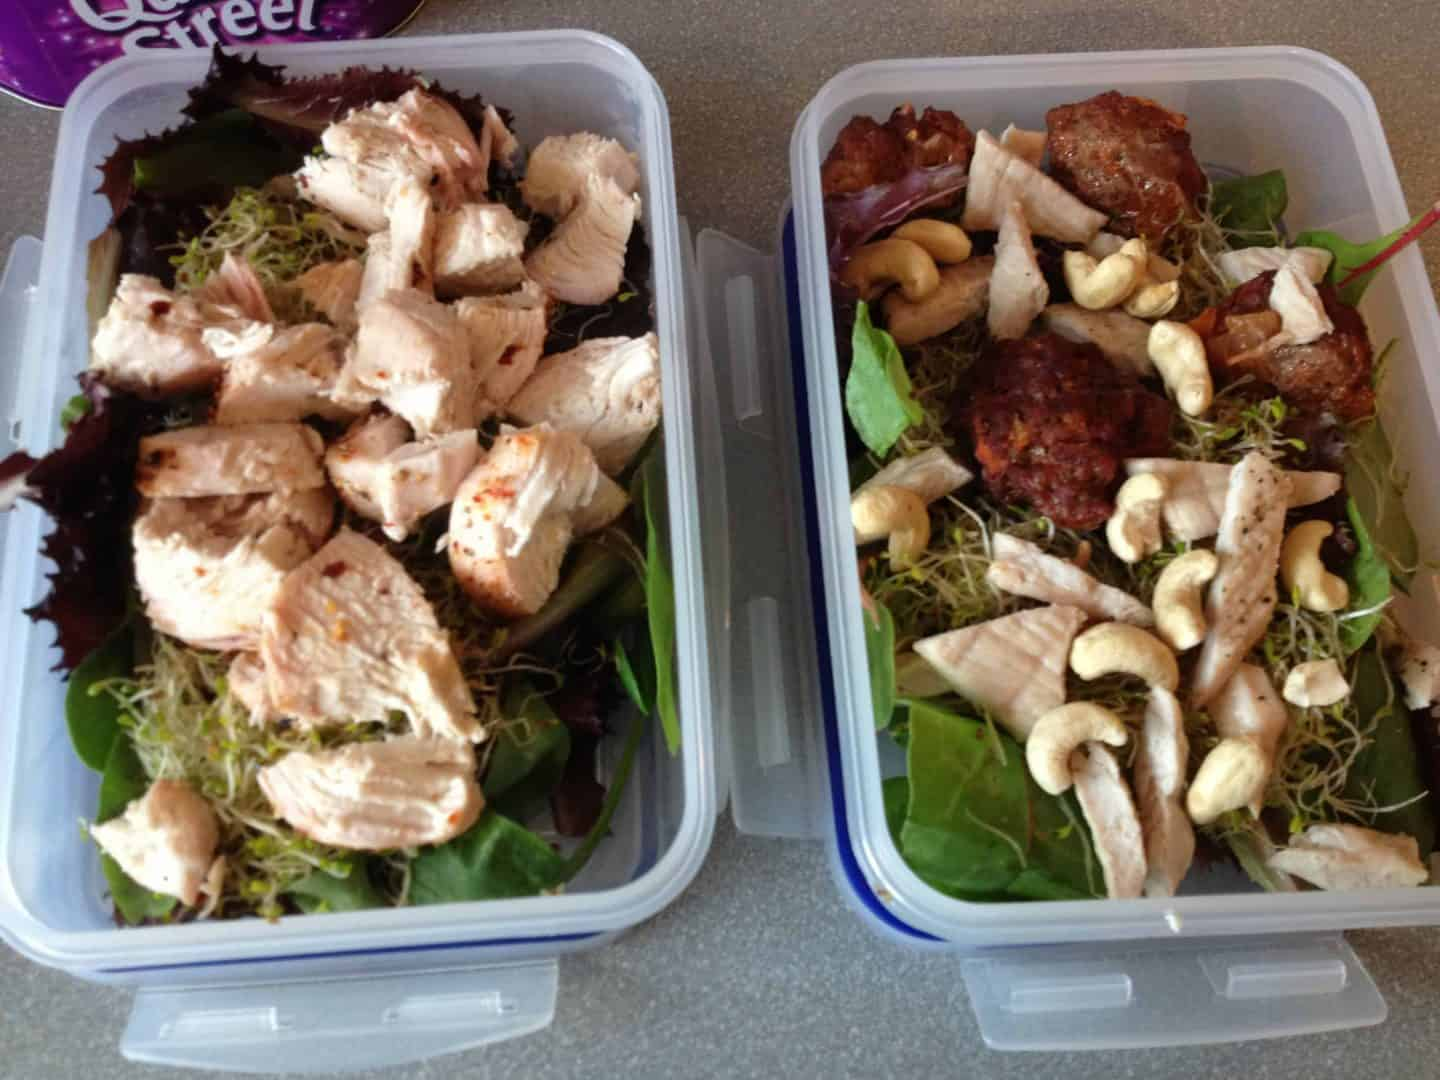 Gluten free weekly meal prep – time to get lean!